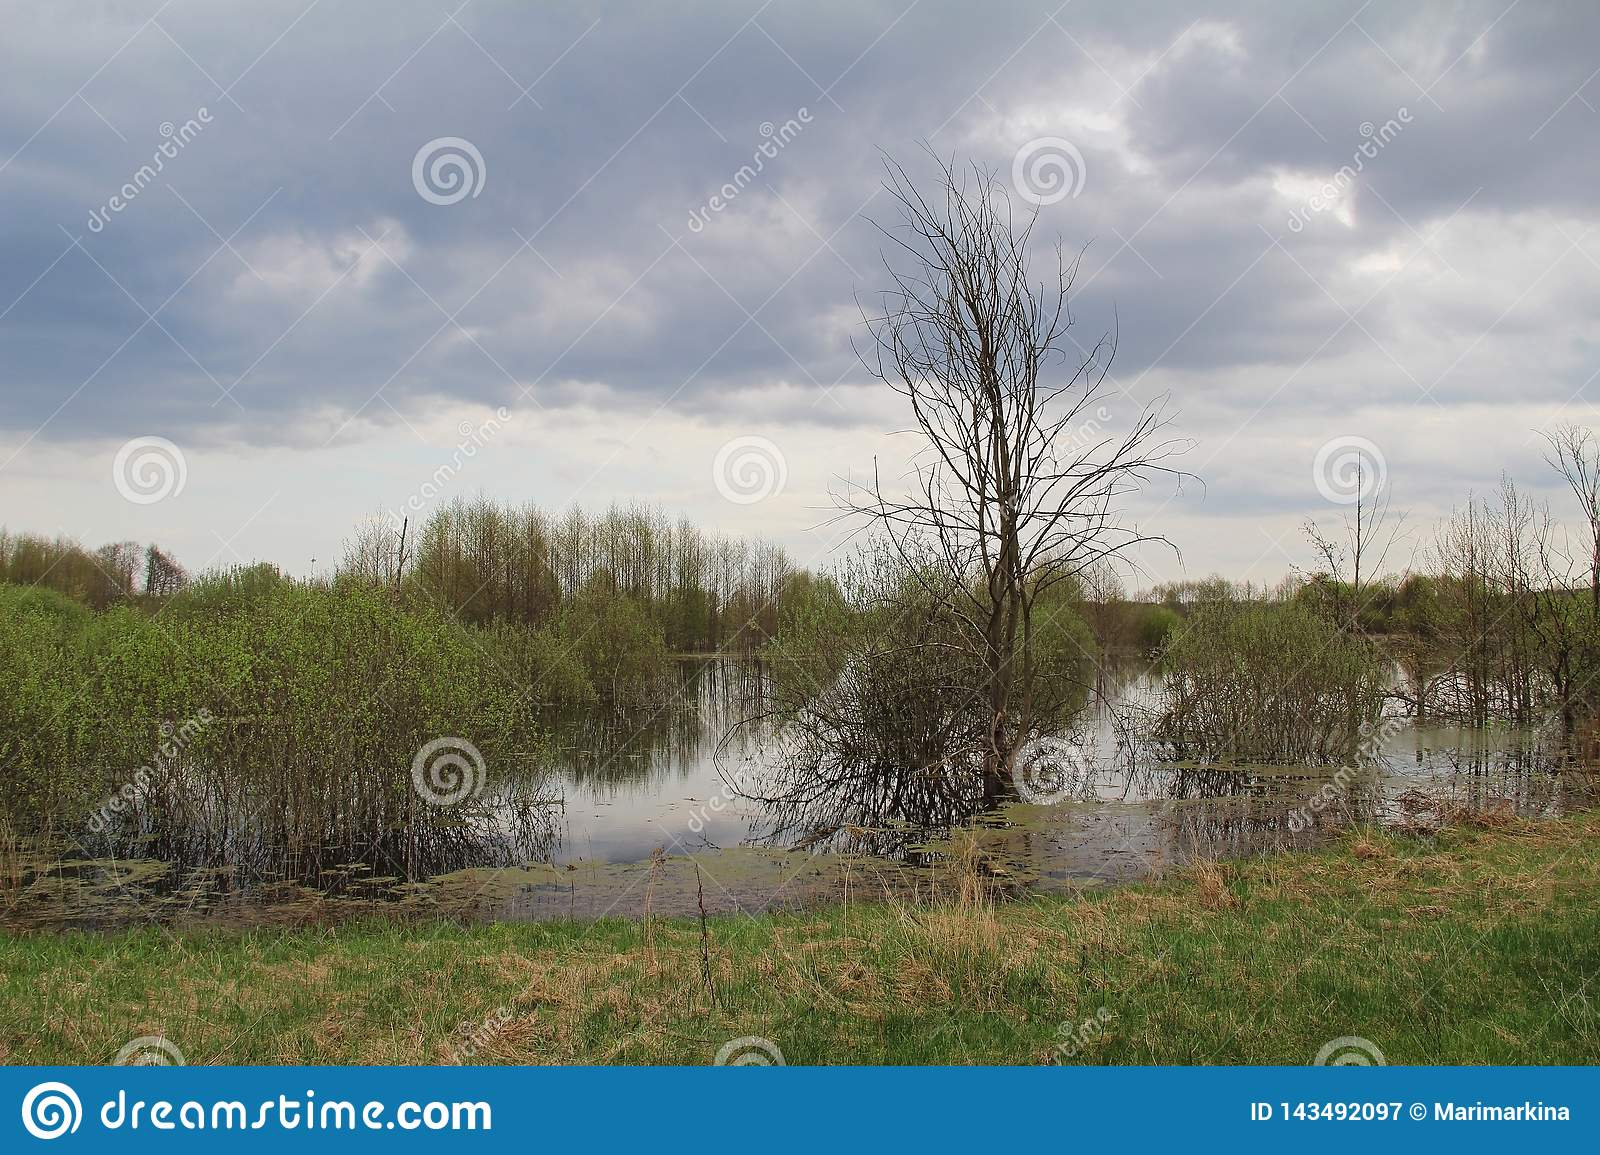 Spill of the river in the fields in early spring in cloudy weather